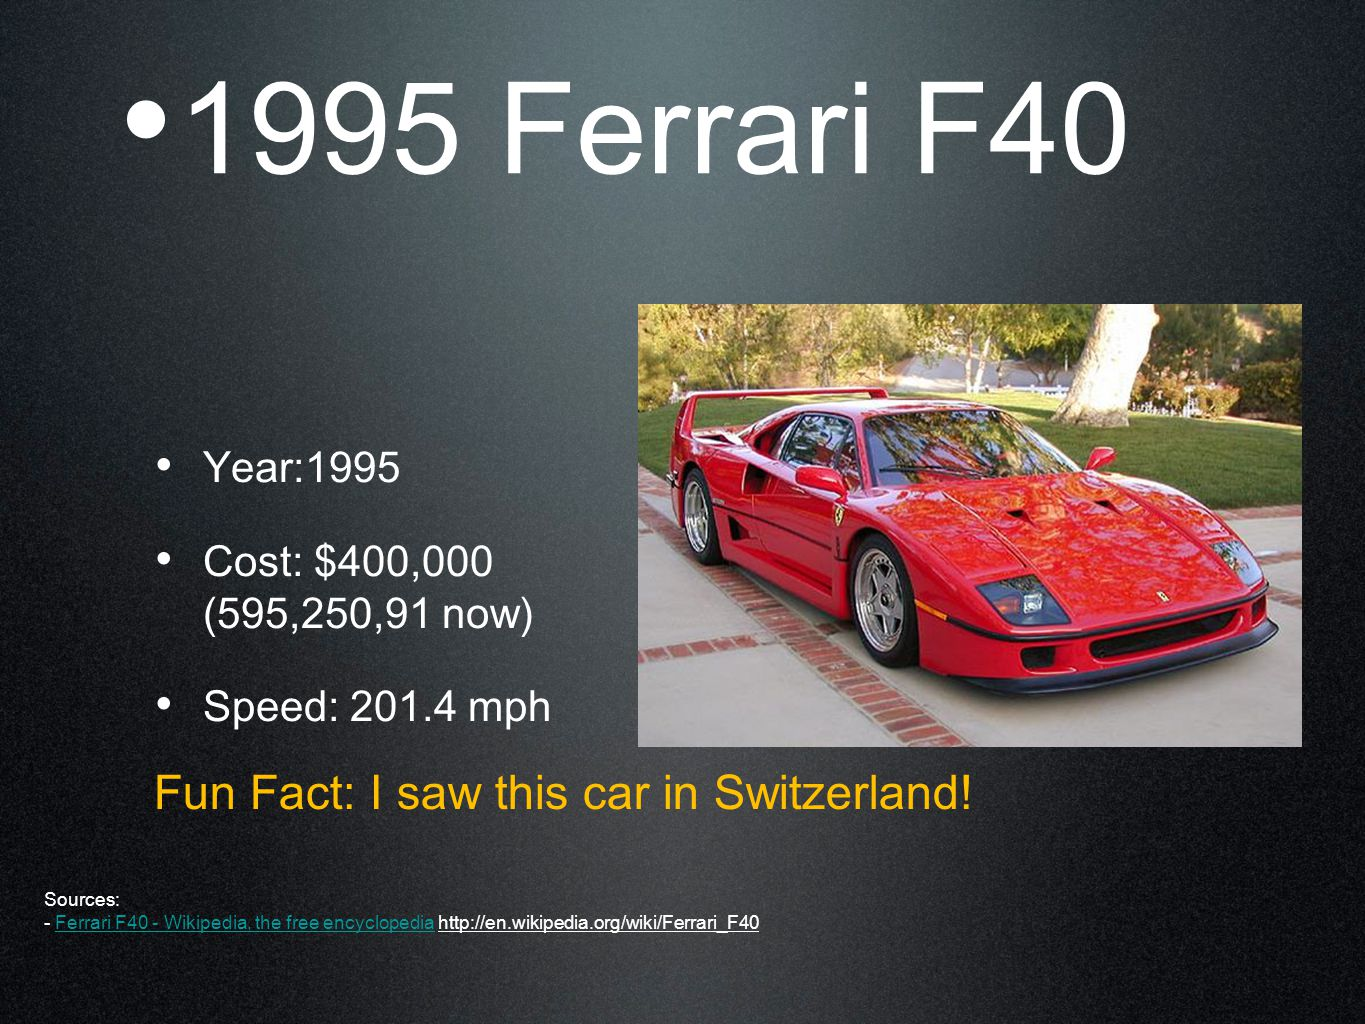 1995 Ferrari F40 Year:1995 Cost: $400,000 (595,250,91 now) Speed: 201.4 mph Fun Fact: I saw this car in Switzerland.